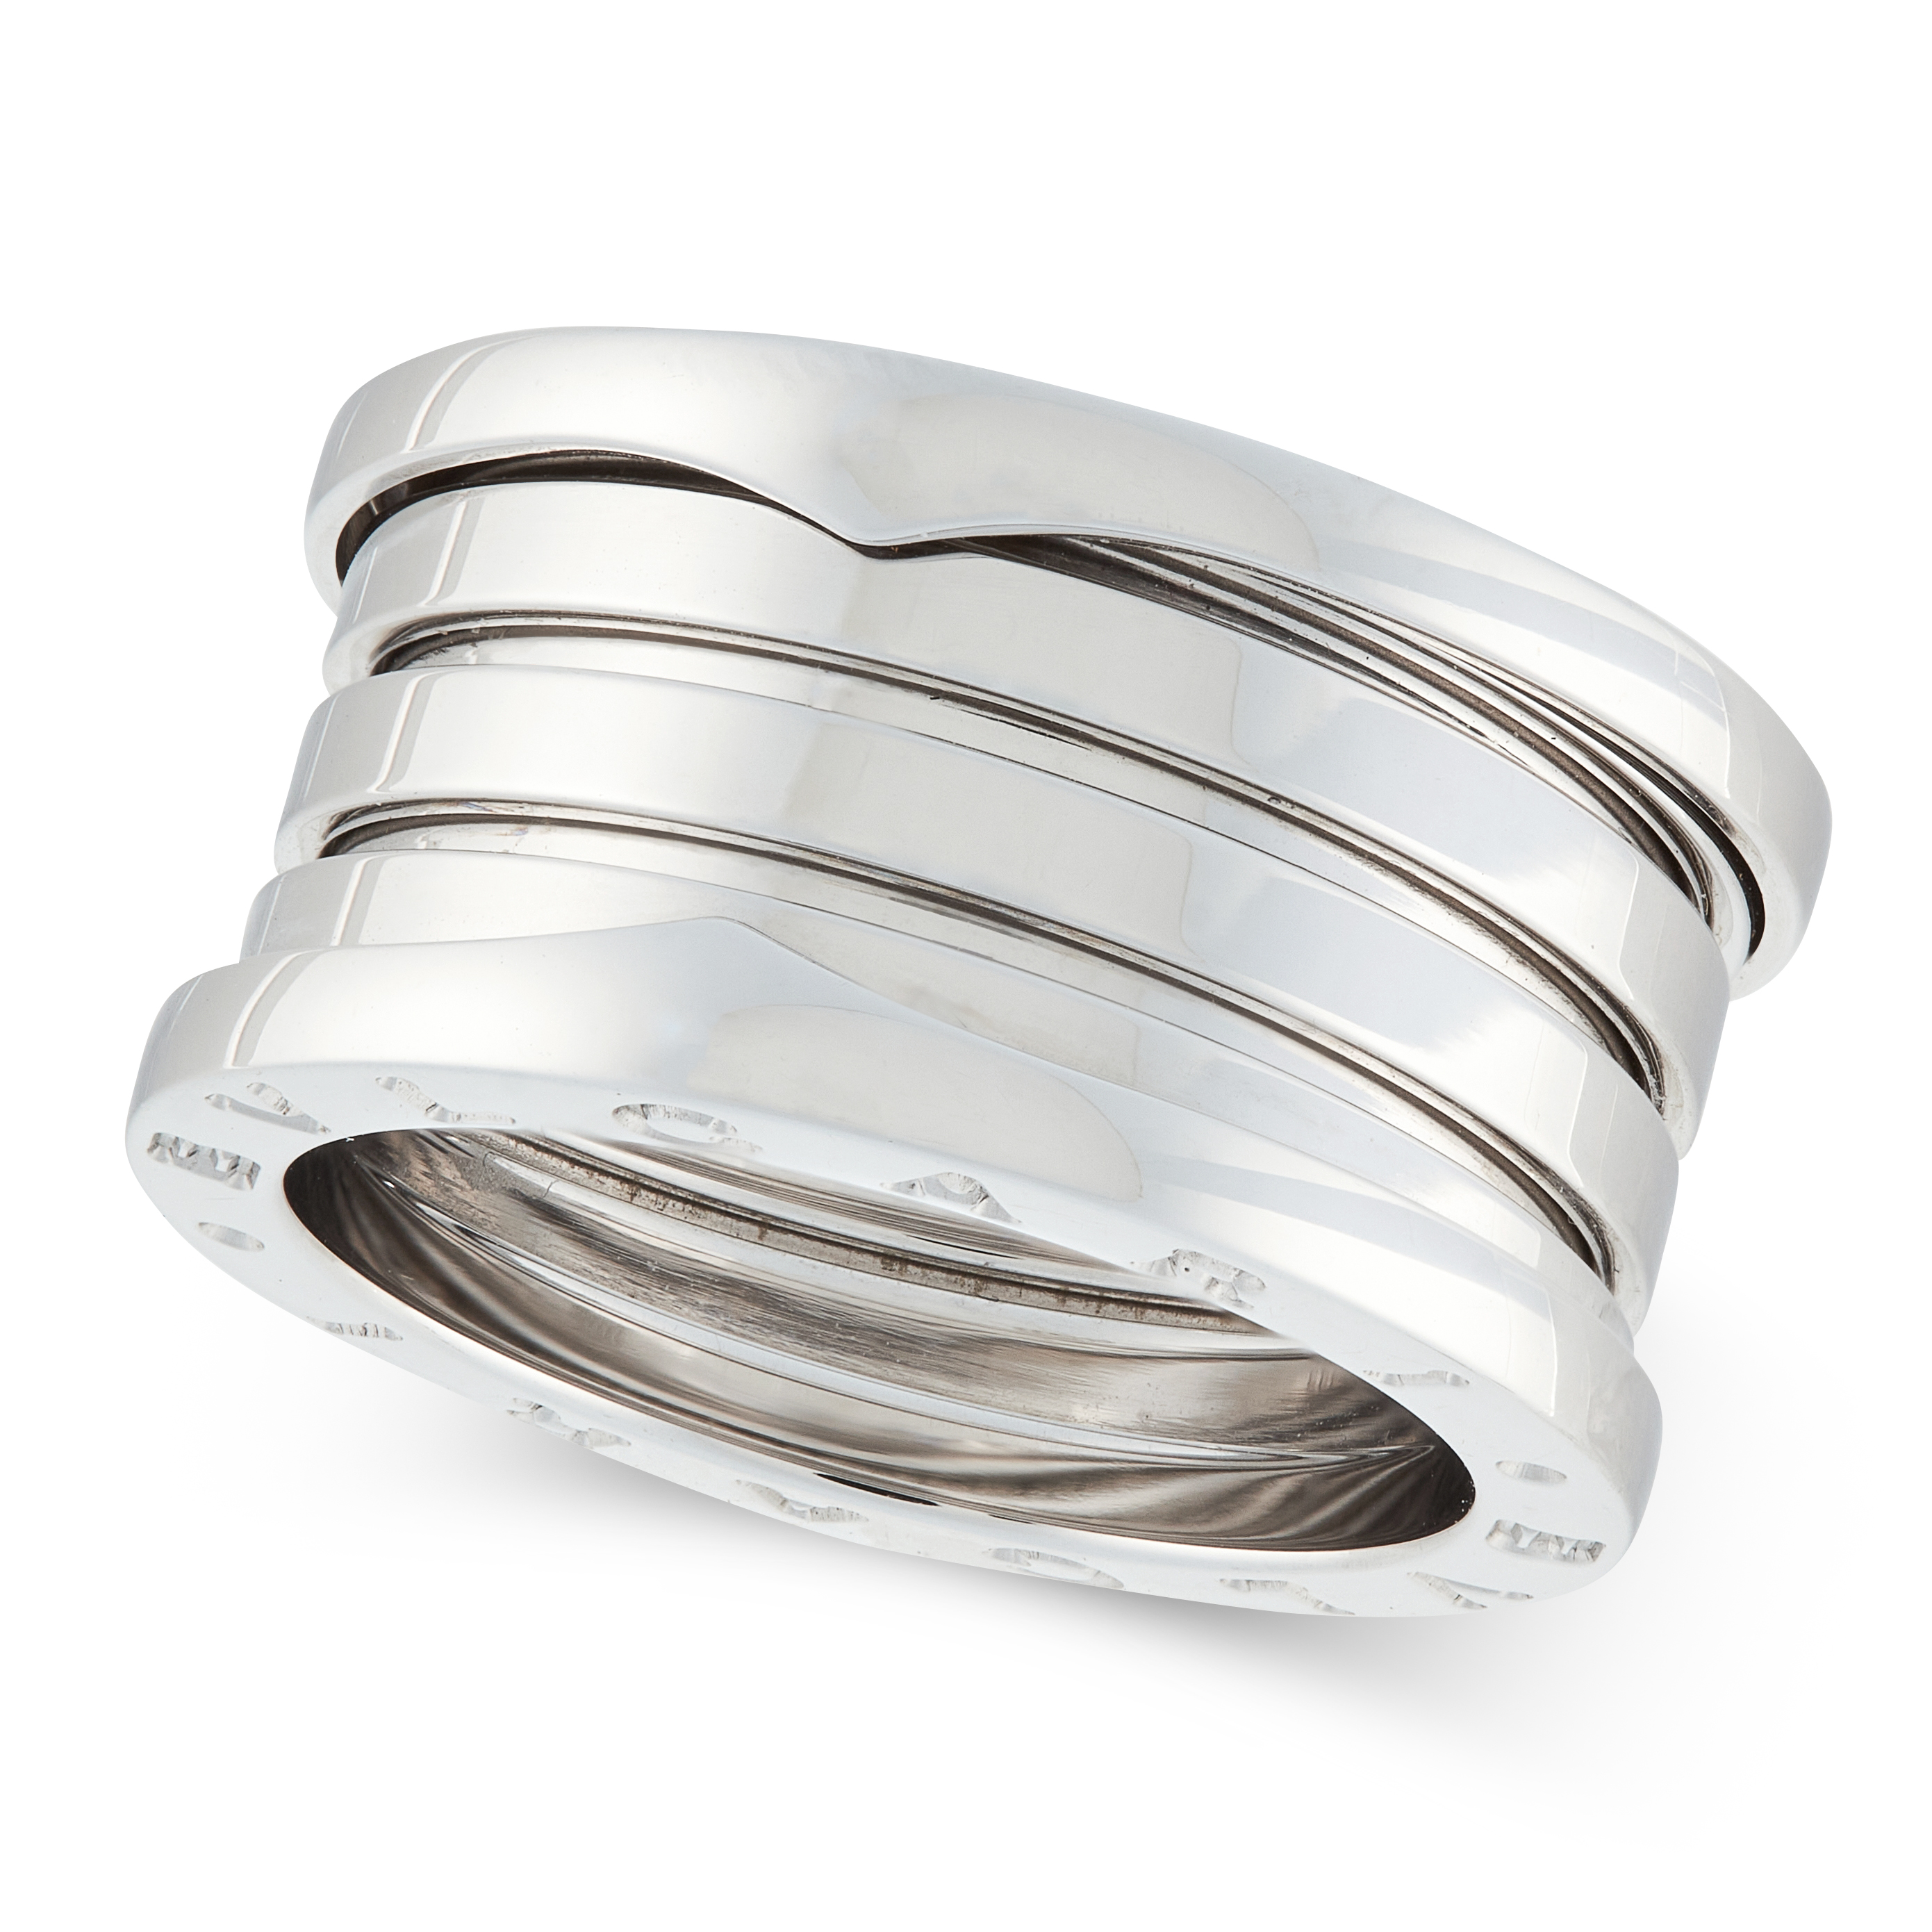 A B.ZERO1 BAND RING, BULGARI in 18ct white gold, designed as an articulated band, signed Bvlgari,